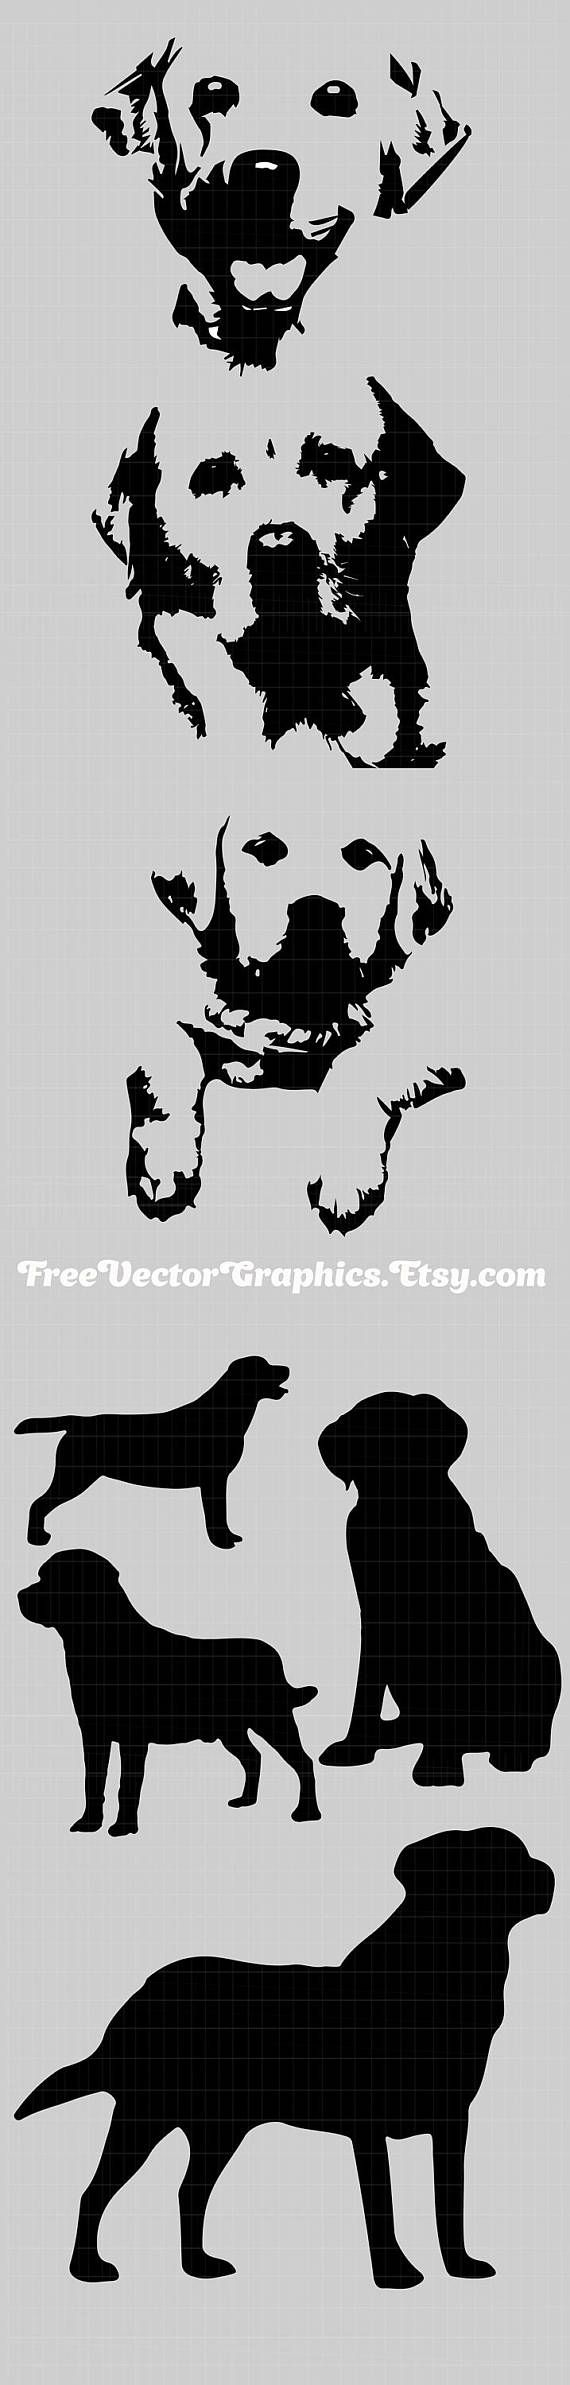 This is funny labrador dog clip art in svg png jpg dxf formats made